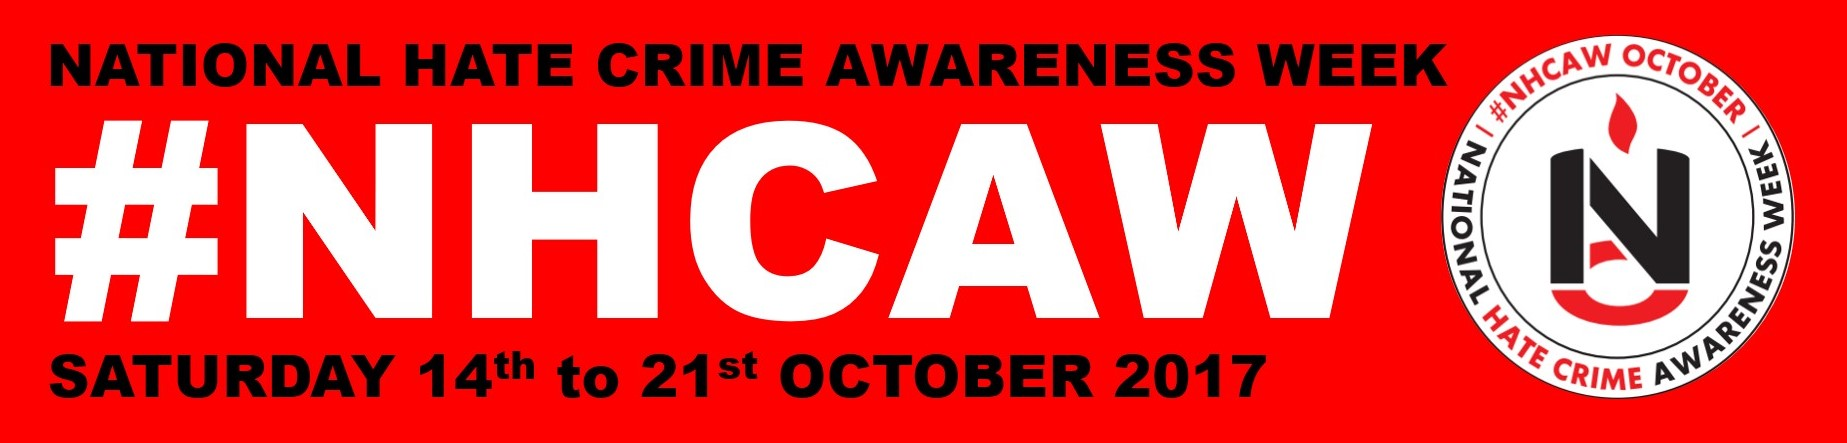 National Hate Crime Awareness Week graphic, reading #NHCAW, Saturday 14th to 21st October 2017